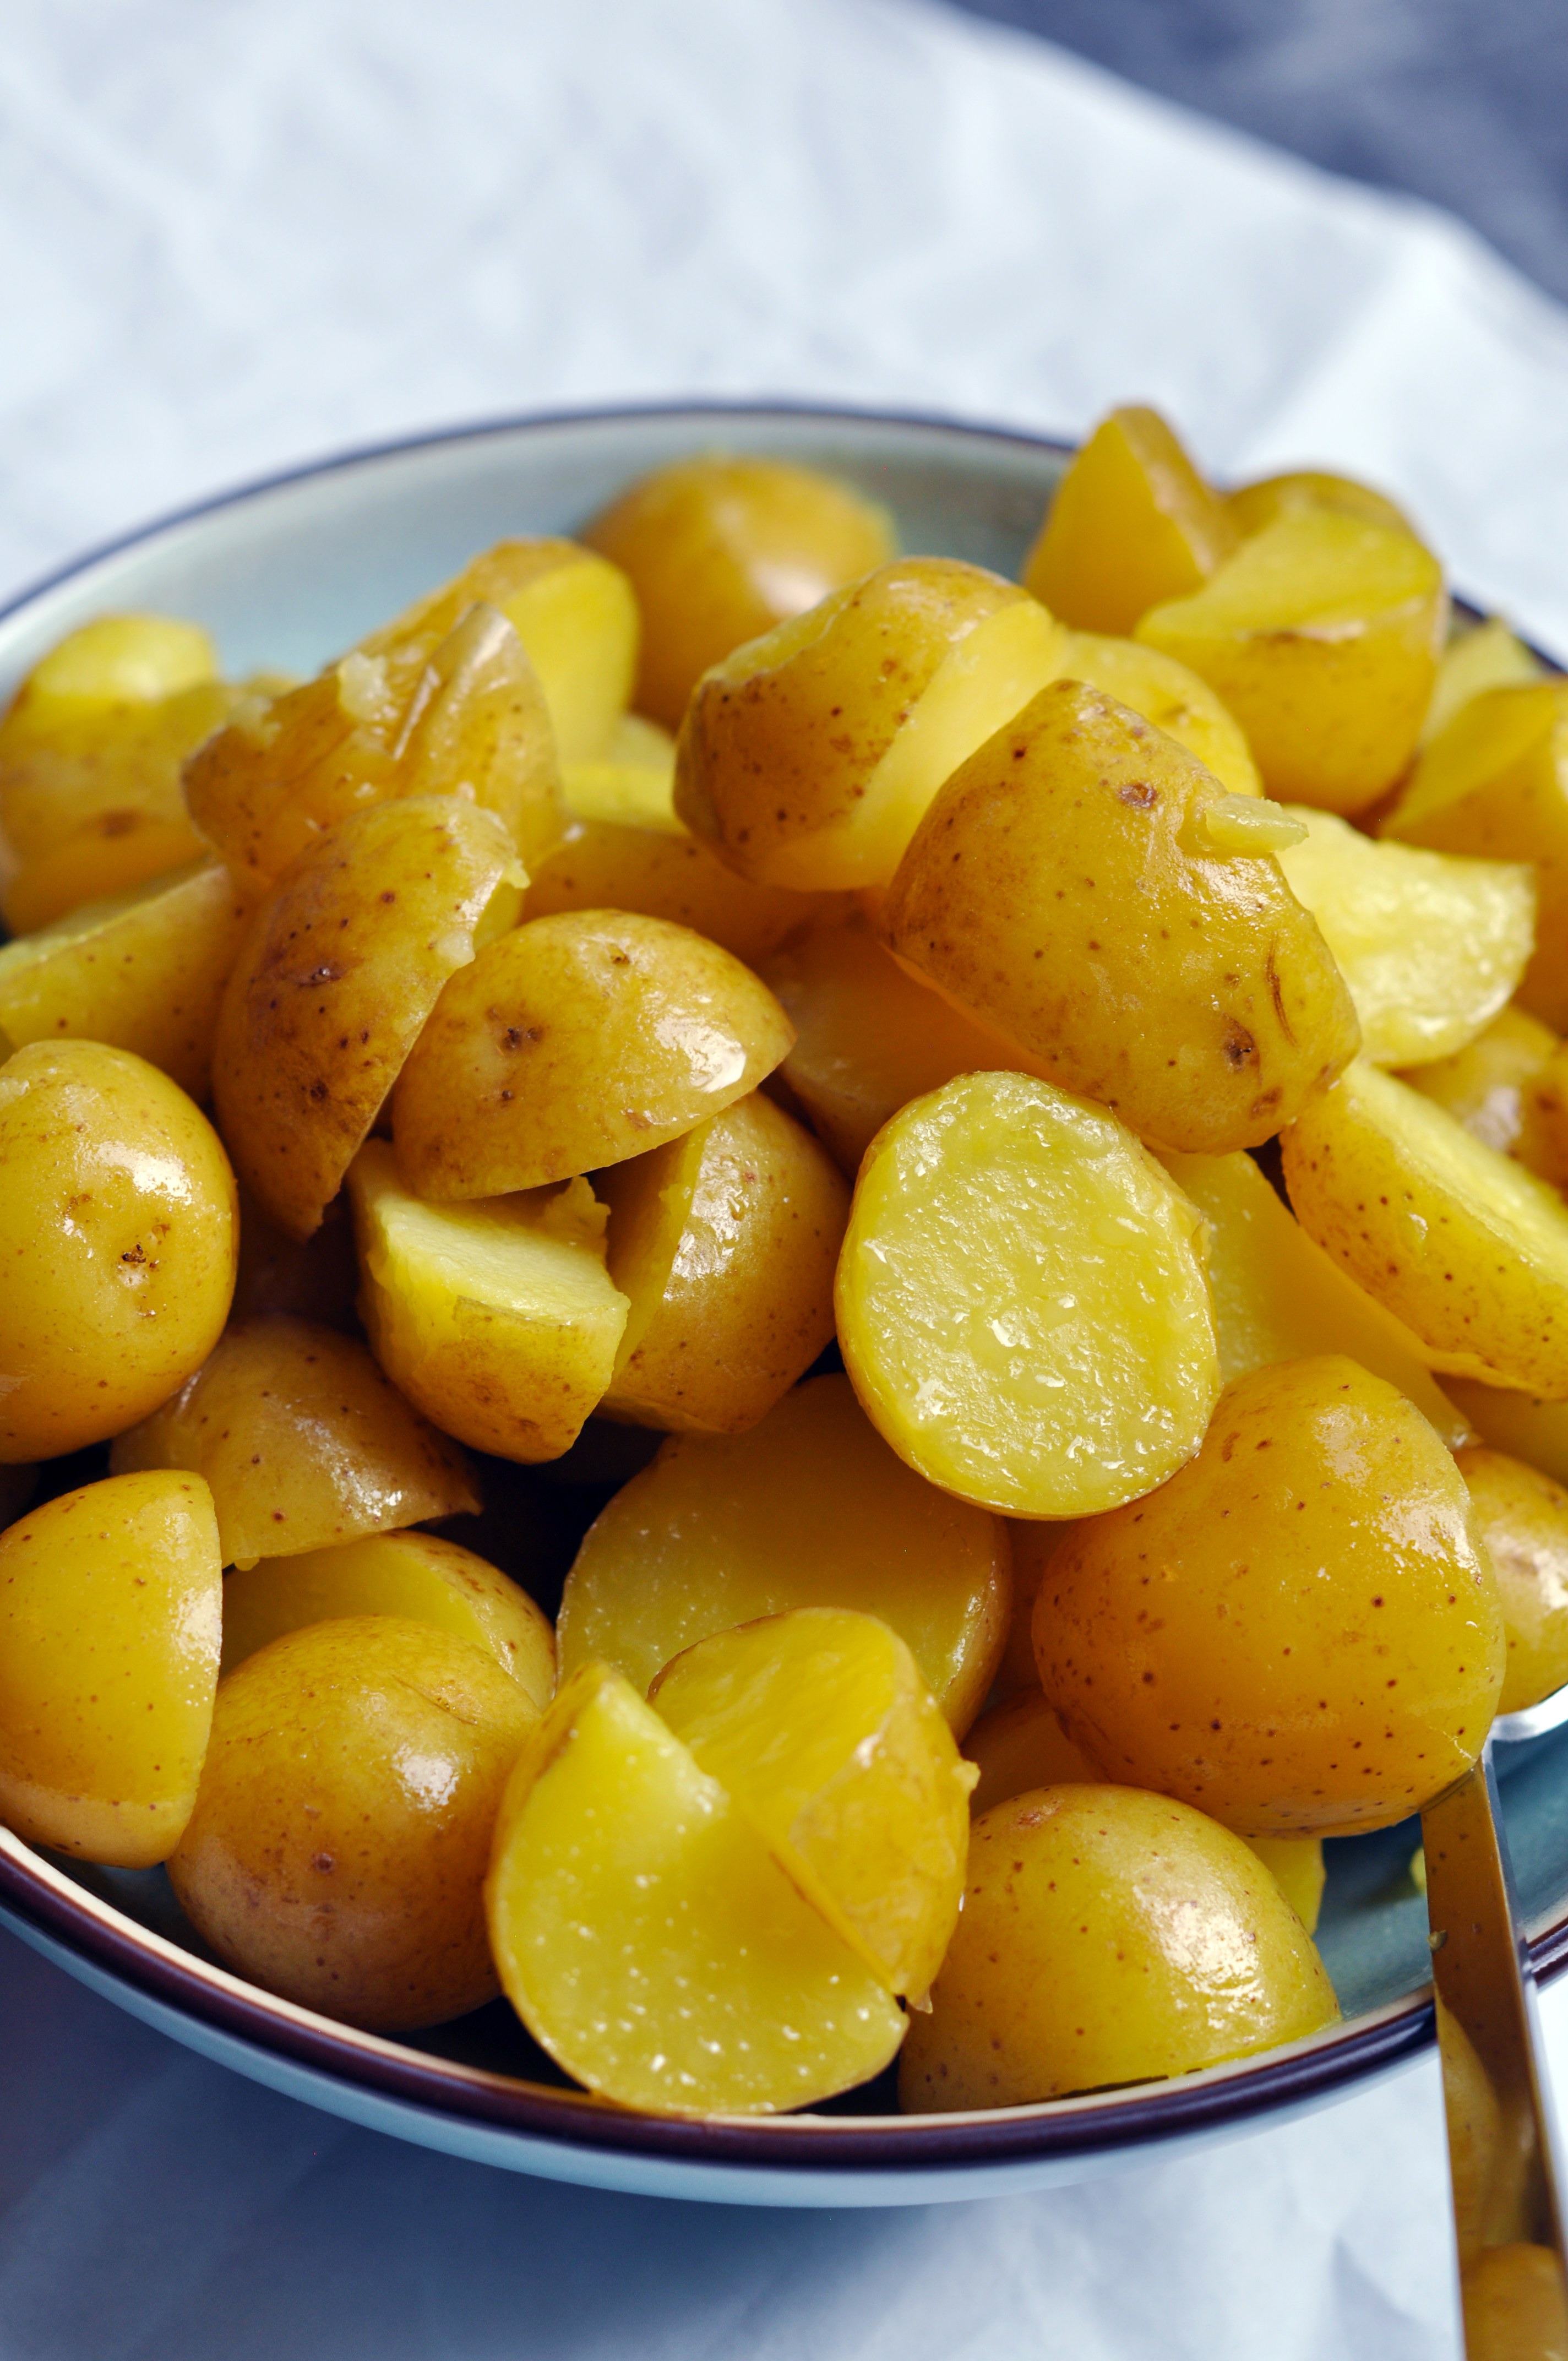 Potatoes with salted butter - ultimate comfort food